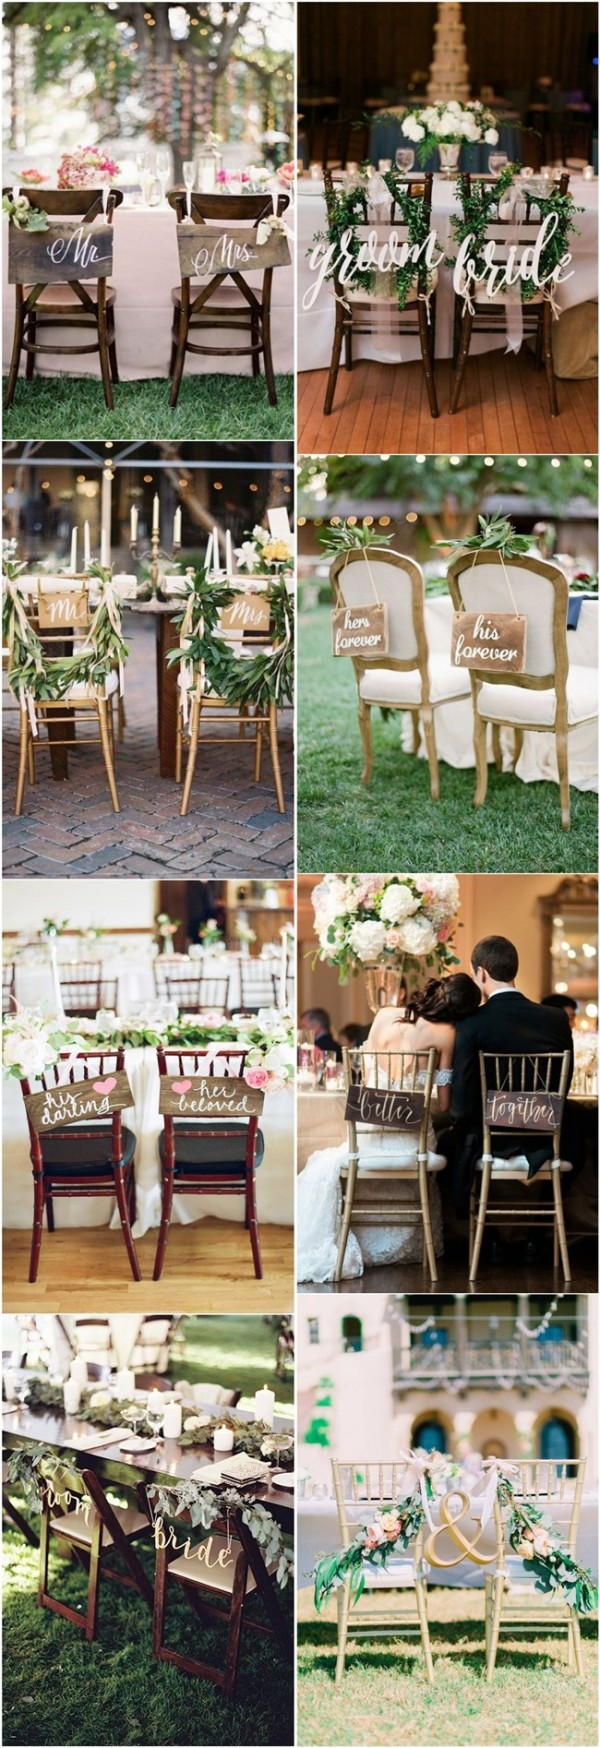 Wedding Chair Decoration Ideas for Bride and Groom